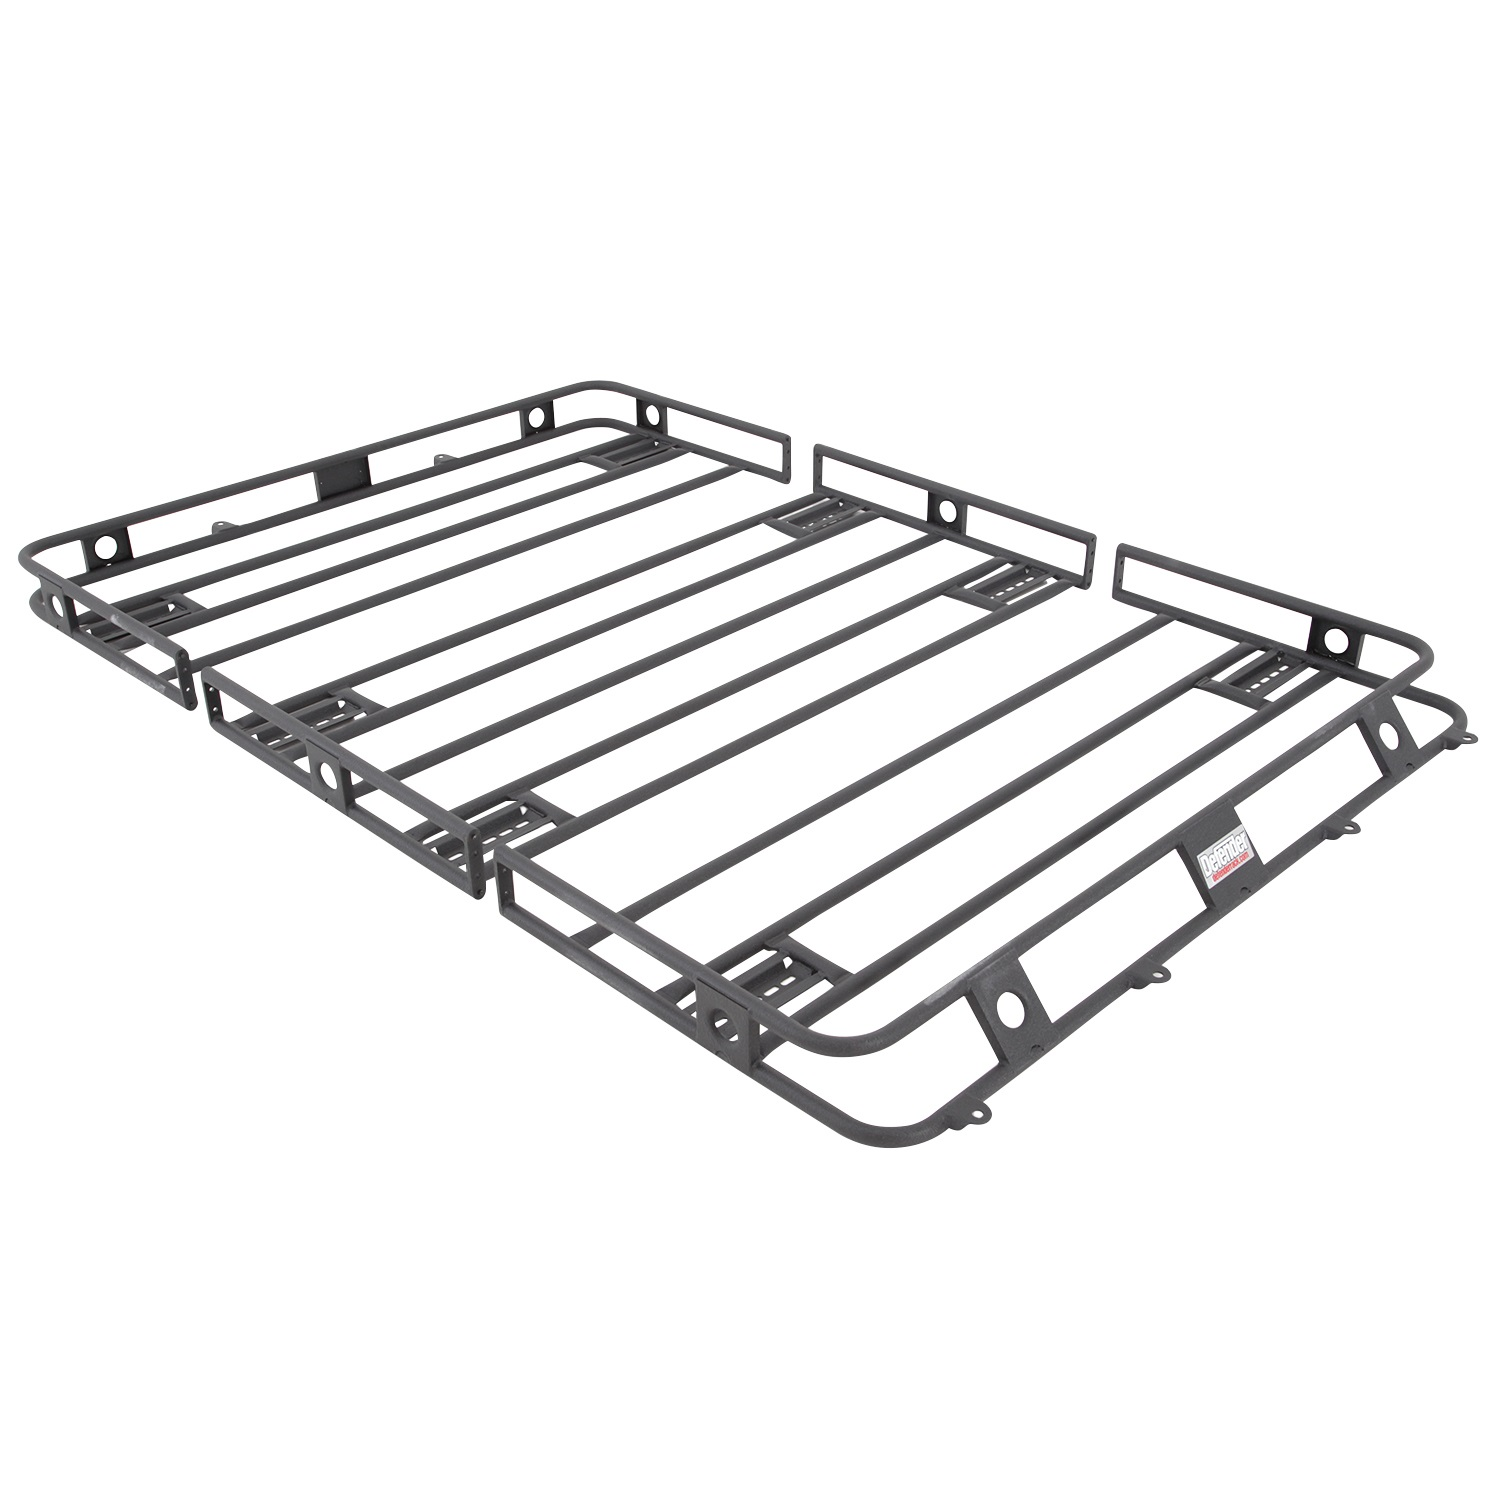 Smittybilt Defender Roof Rack Ford E 250 E 150 E 350 Super Duty Club Wagon Fs Jd